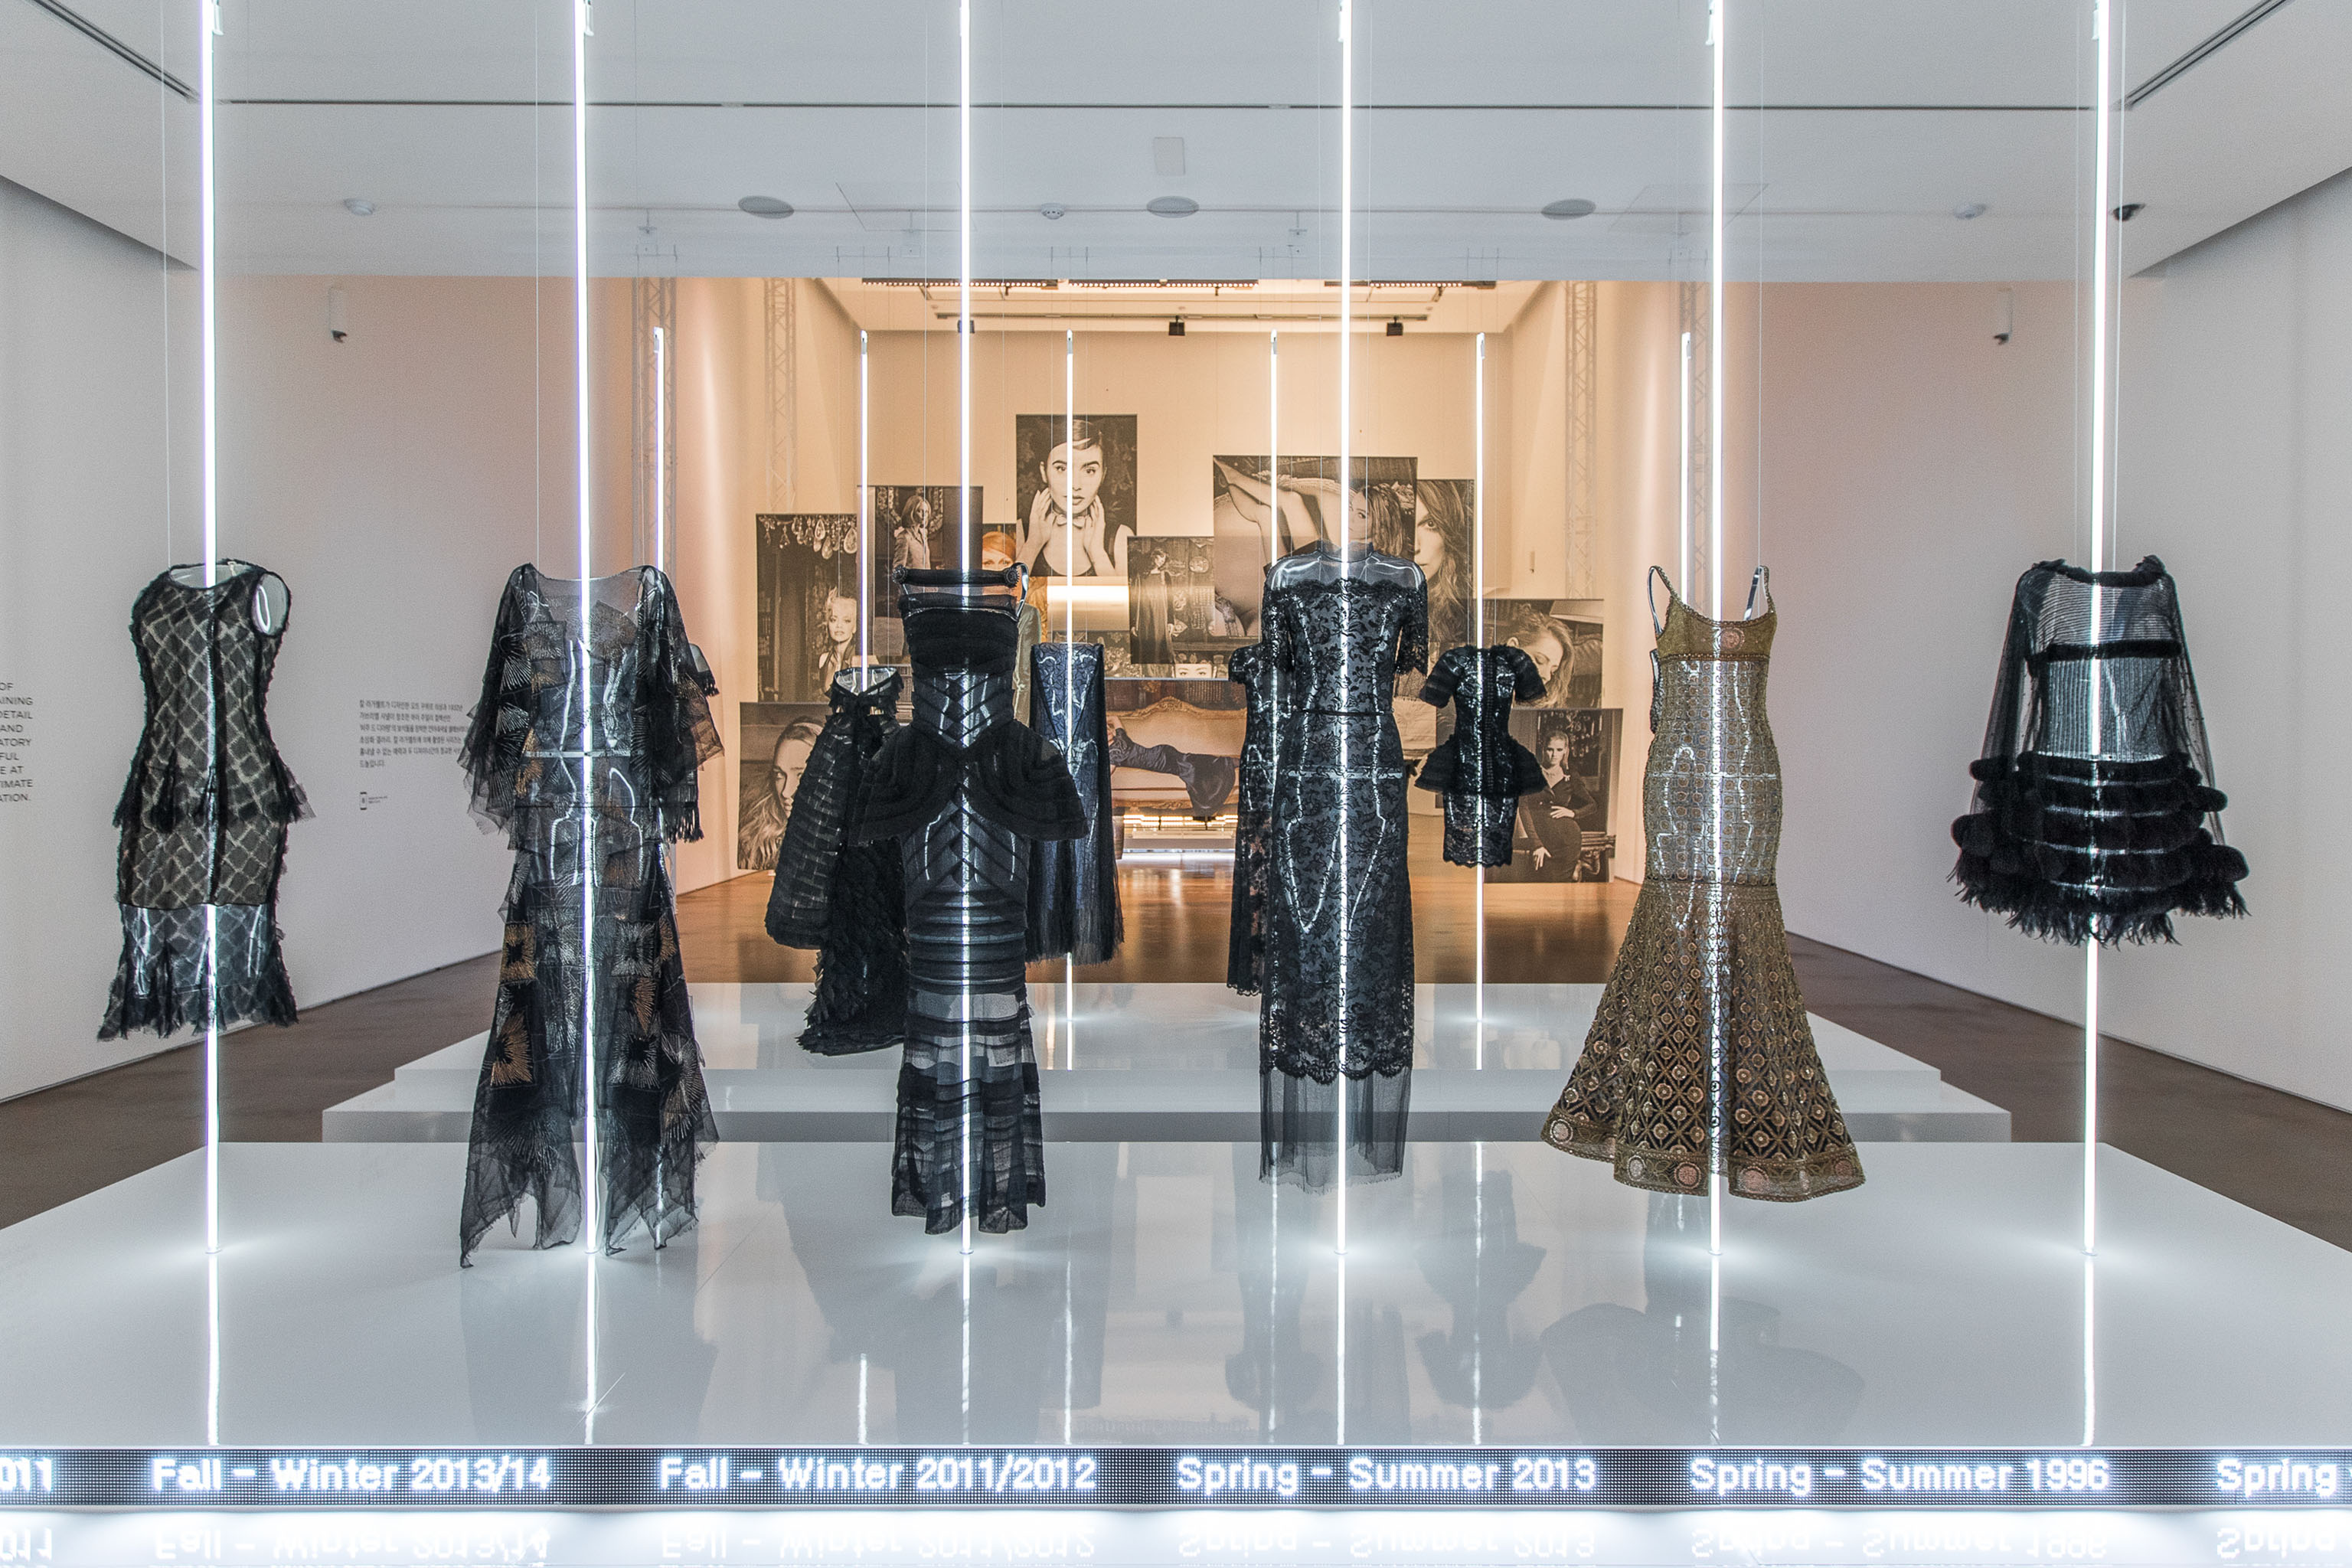 The Chanel Mademoiselle Privé Exhibition in Seoul.